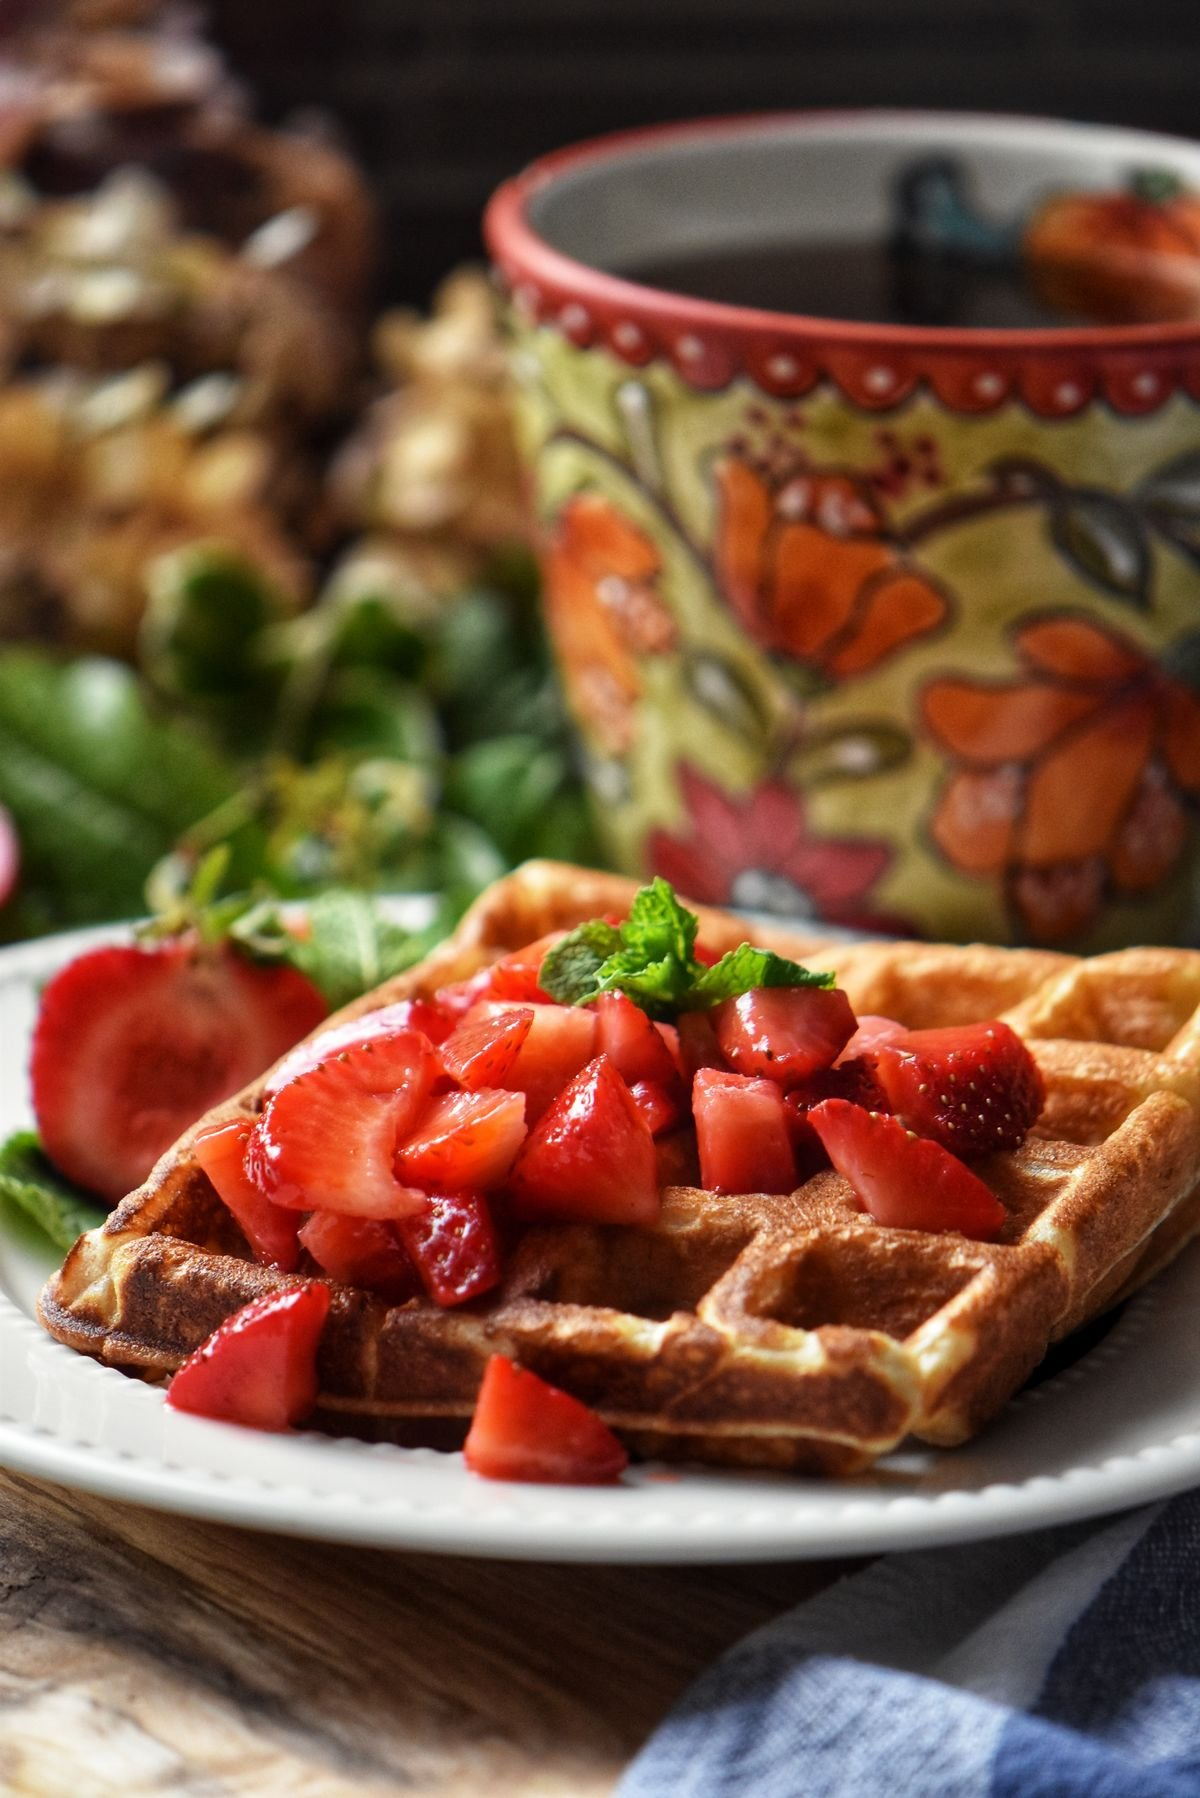 A plate of fluffy buttermilk waffles topped with macerated strawberries.